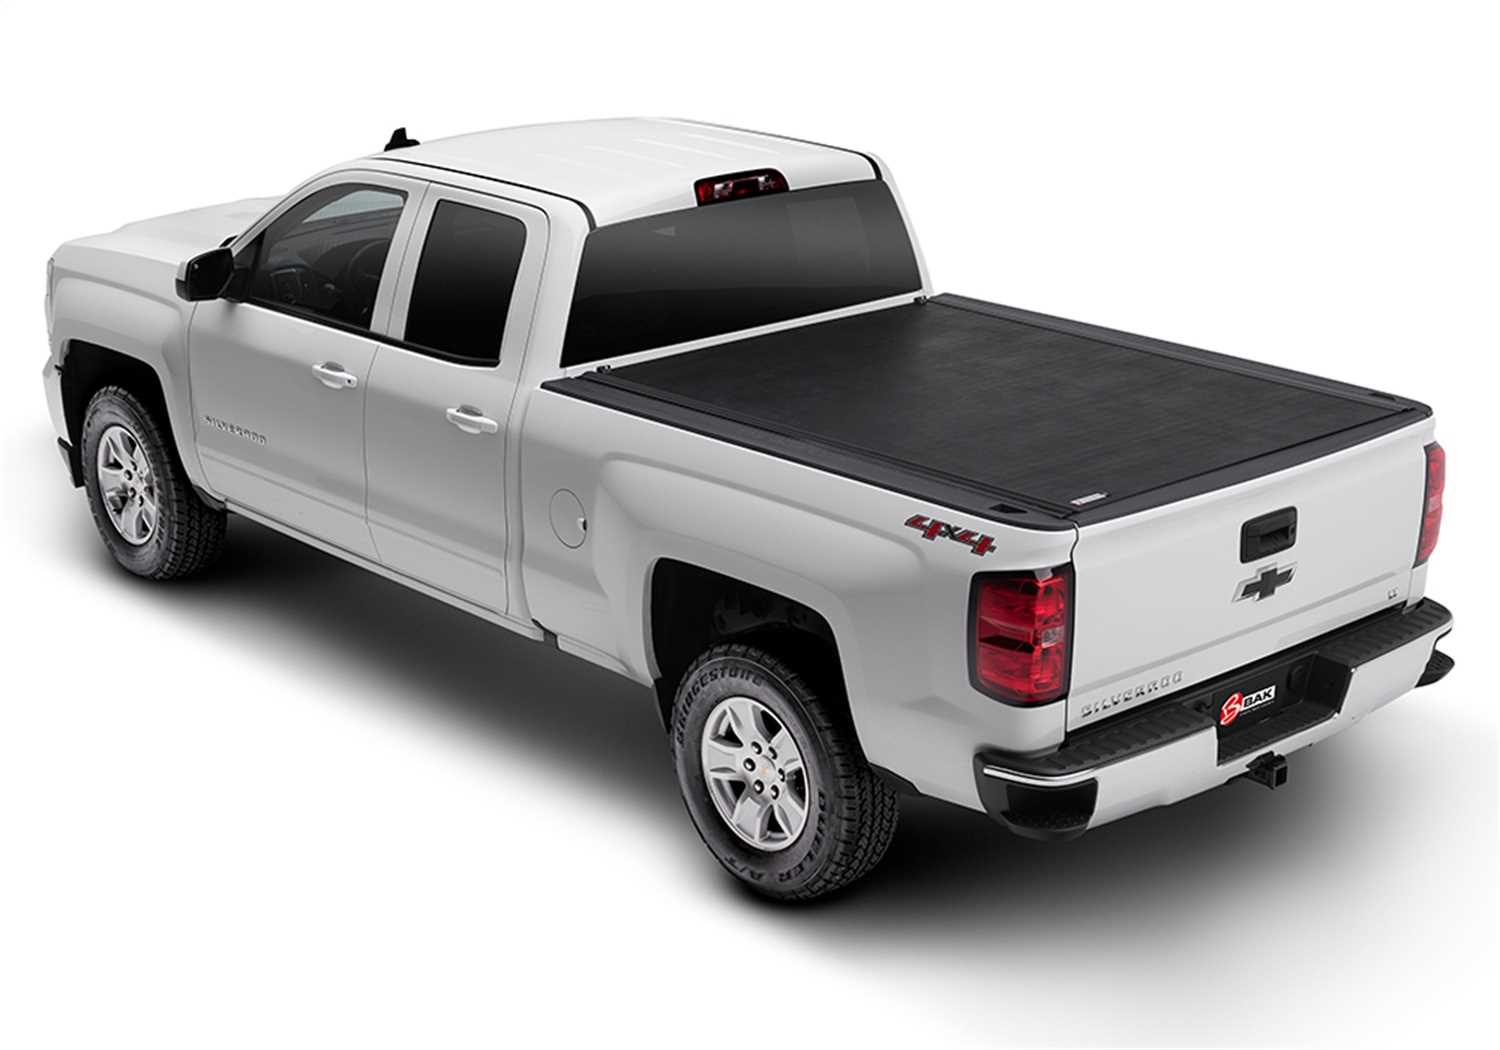 39133 Bak Industries Revolver X2 Hard Rolling Truck Bed Cover